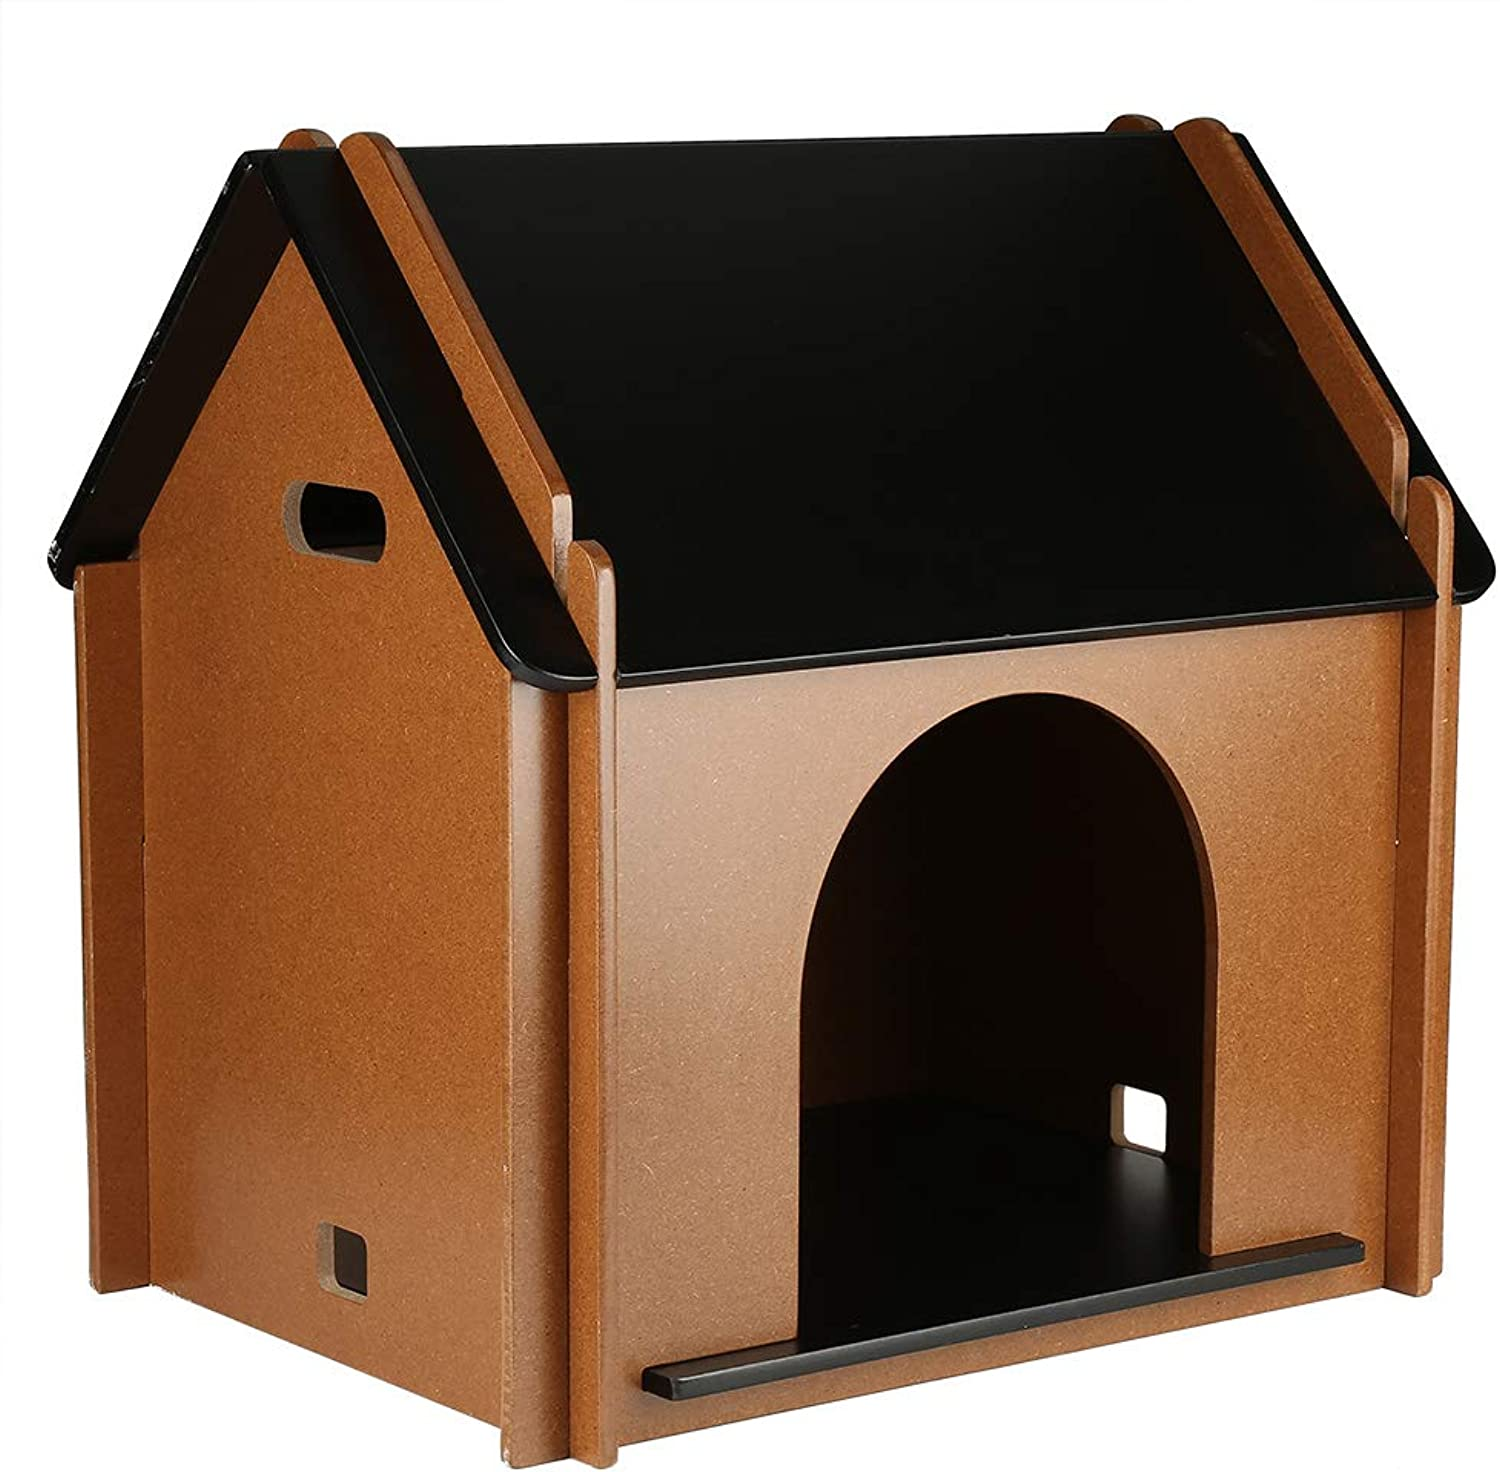 Dogs House-Pet House Foldable Wooden helter for Dogs Indoor